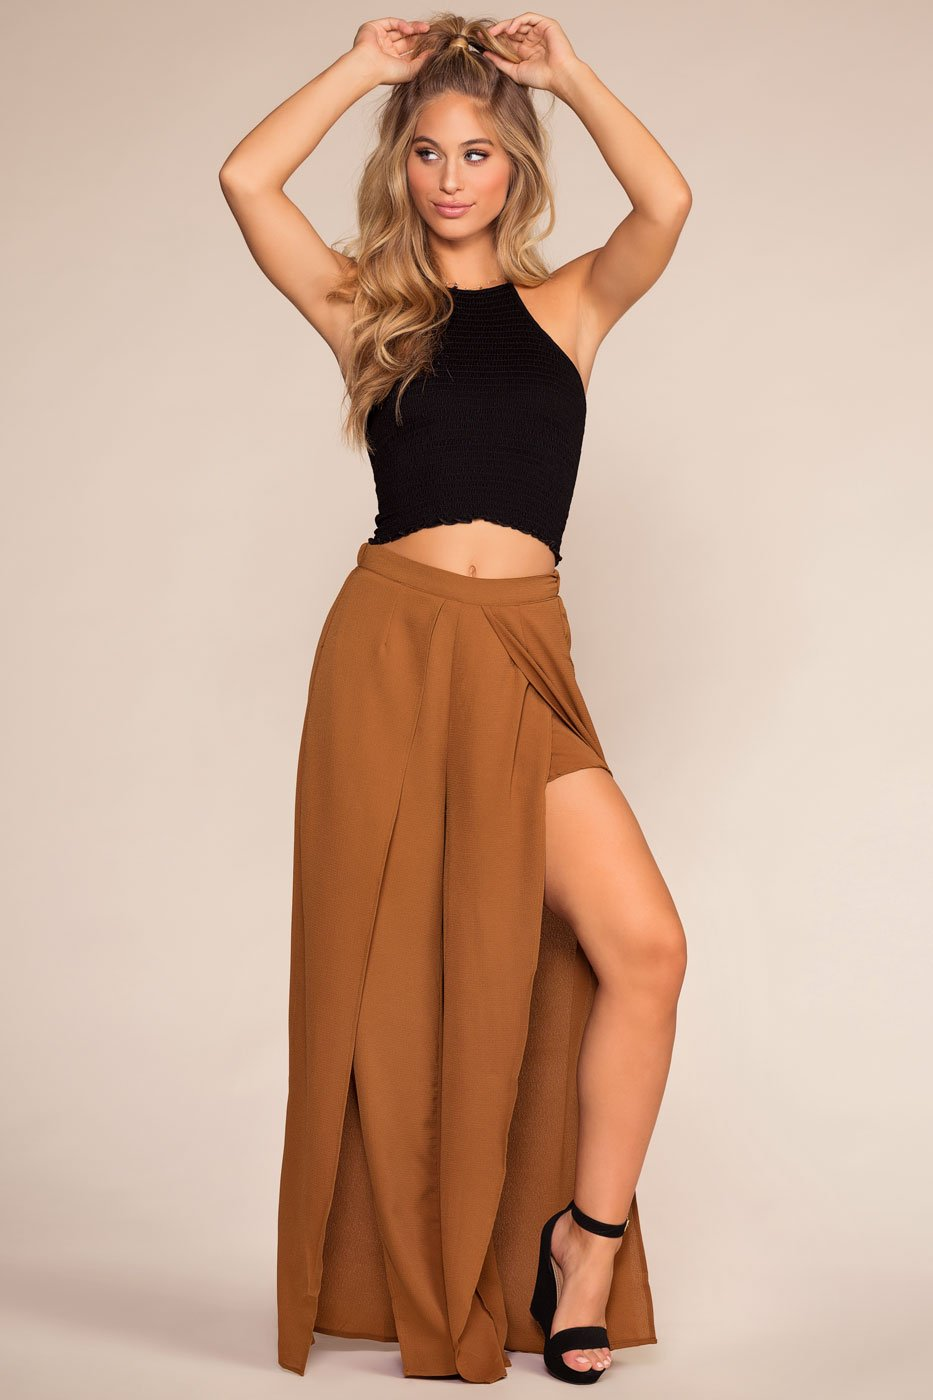 Pants - Mohave High Waisted Front Slit Pants - Bronze